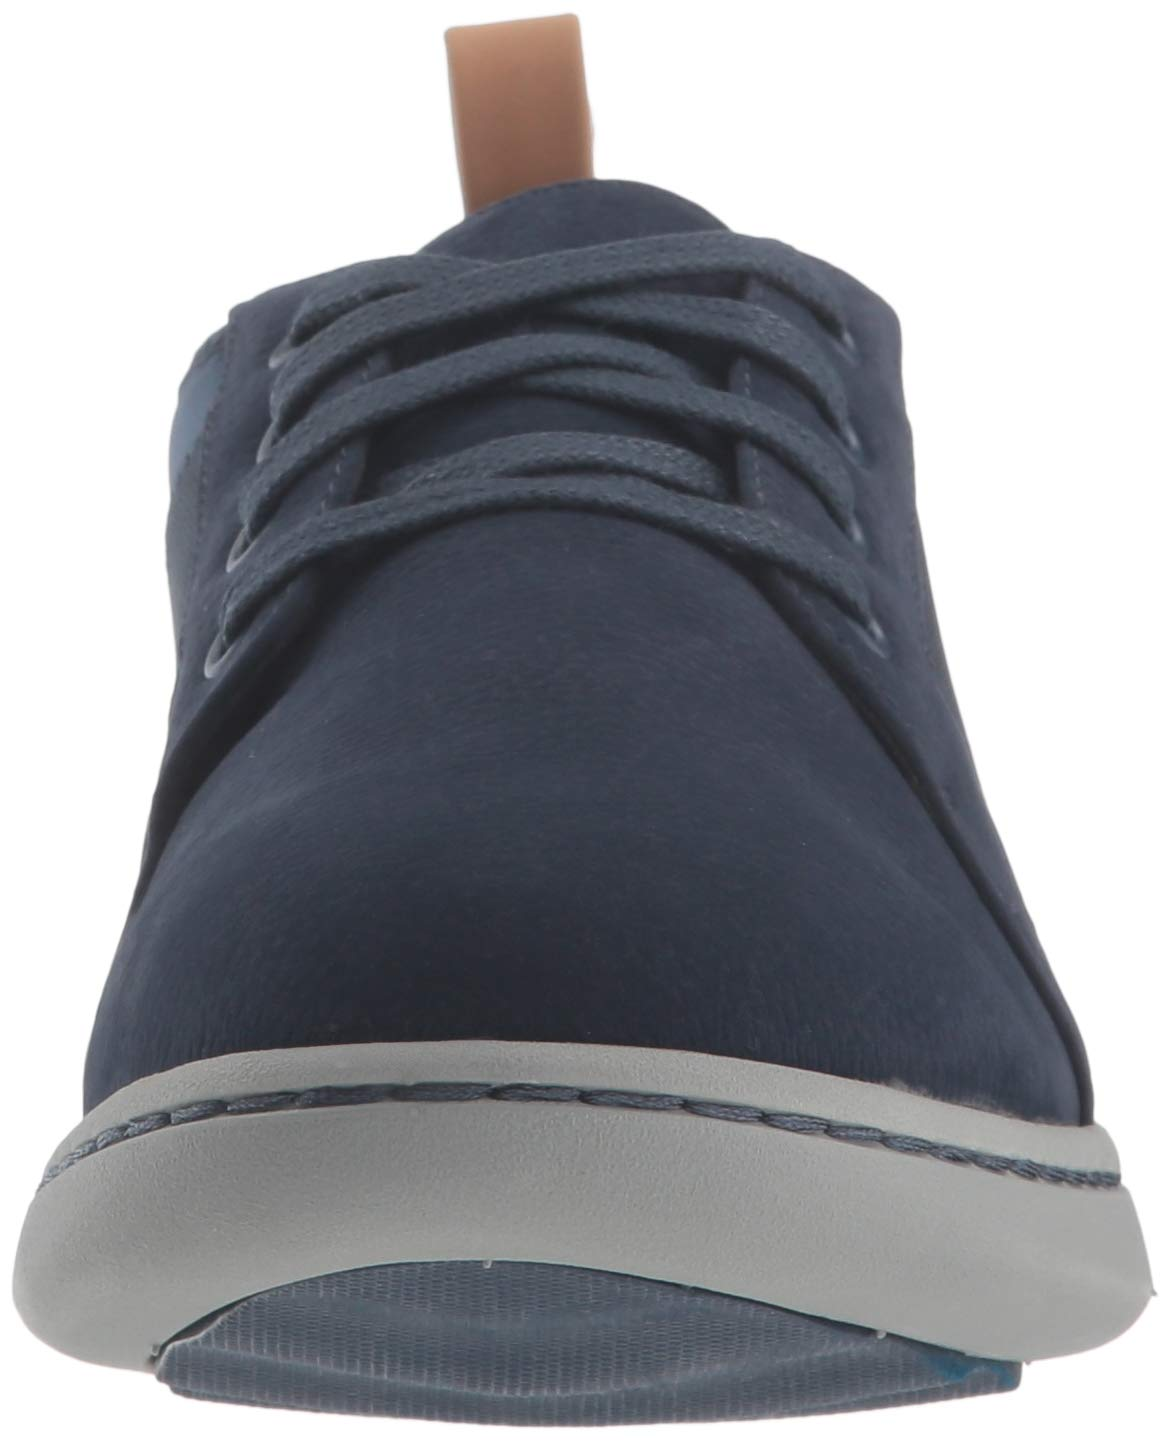 Zapatos Ropa Mujer Fly mx Tenis Para Clarks Step Move c4Ba1qq80 fa2712a5f08f